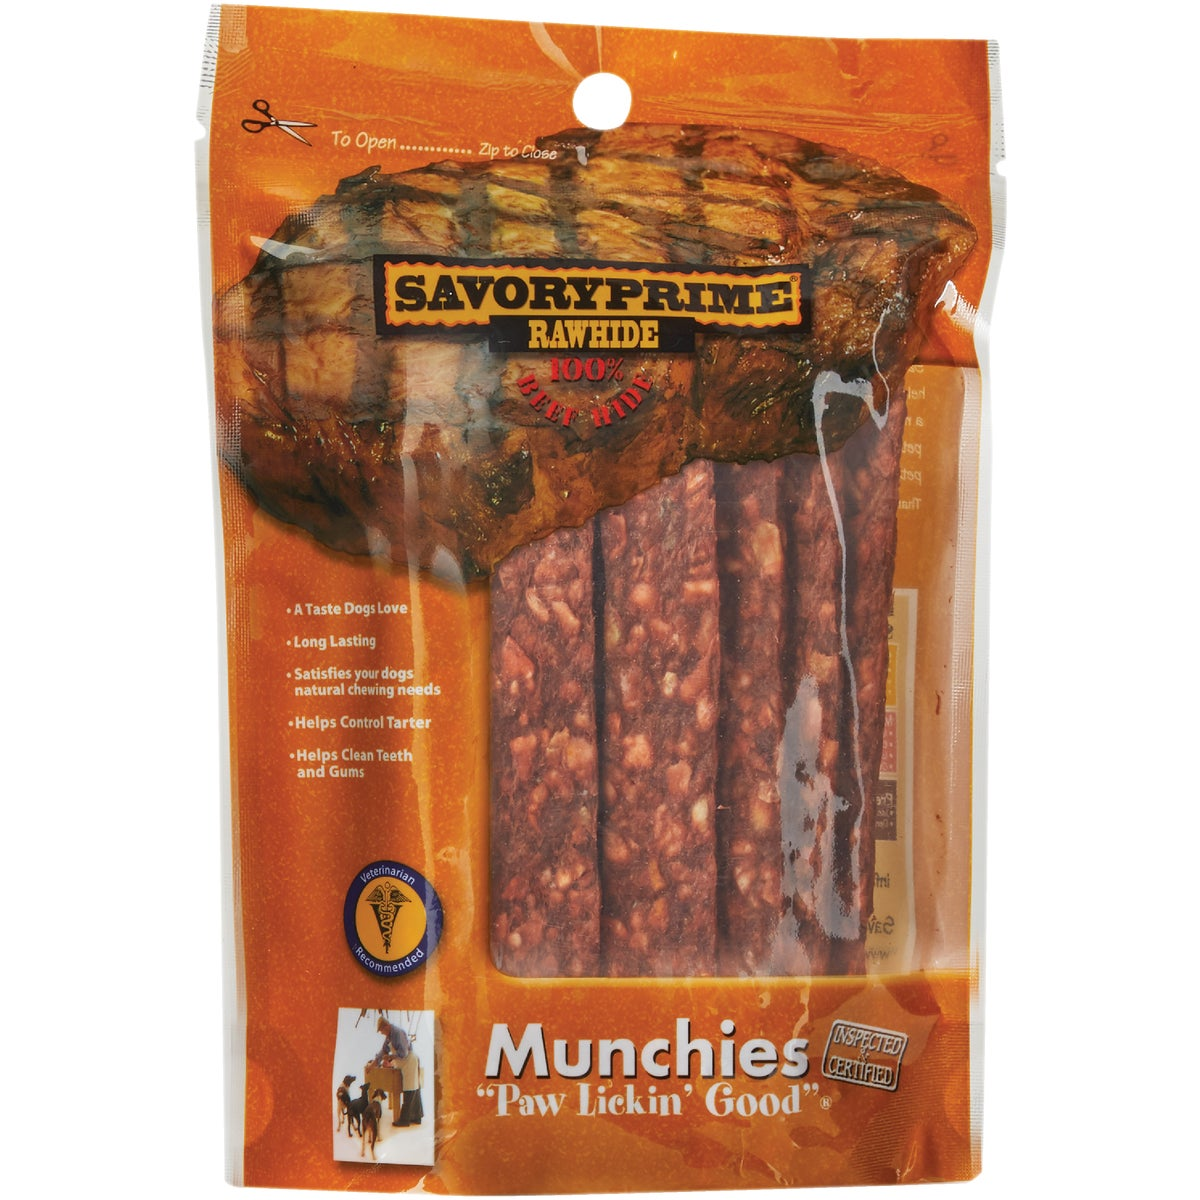 12PK BEEF DOG SNACKS - 00005 by Savory Prime